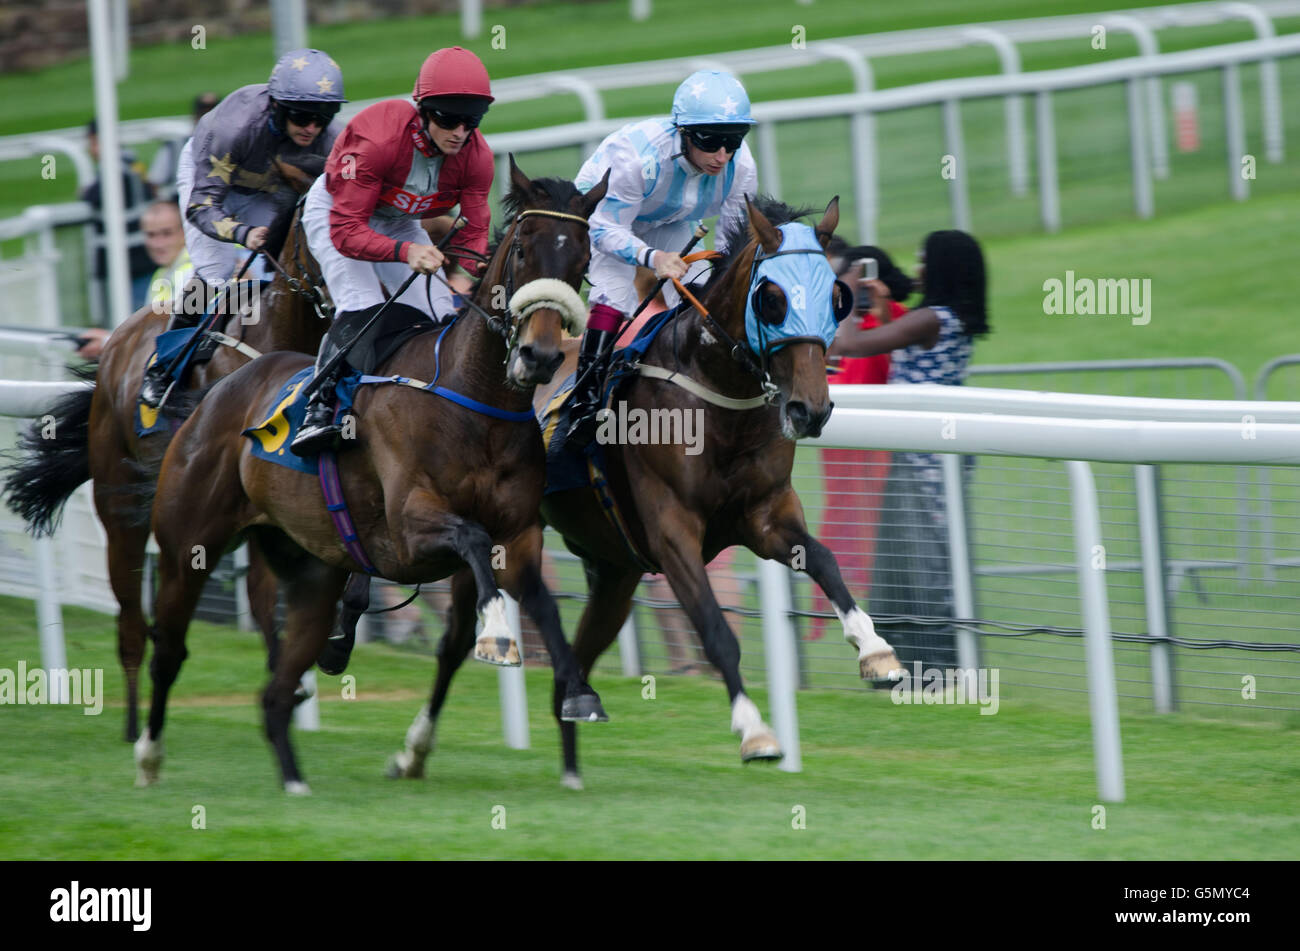 Horse racing in Chester 11th of June 2016. - Stock Image